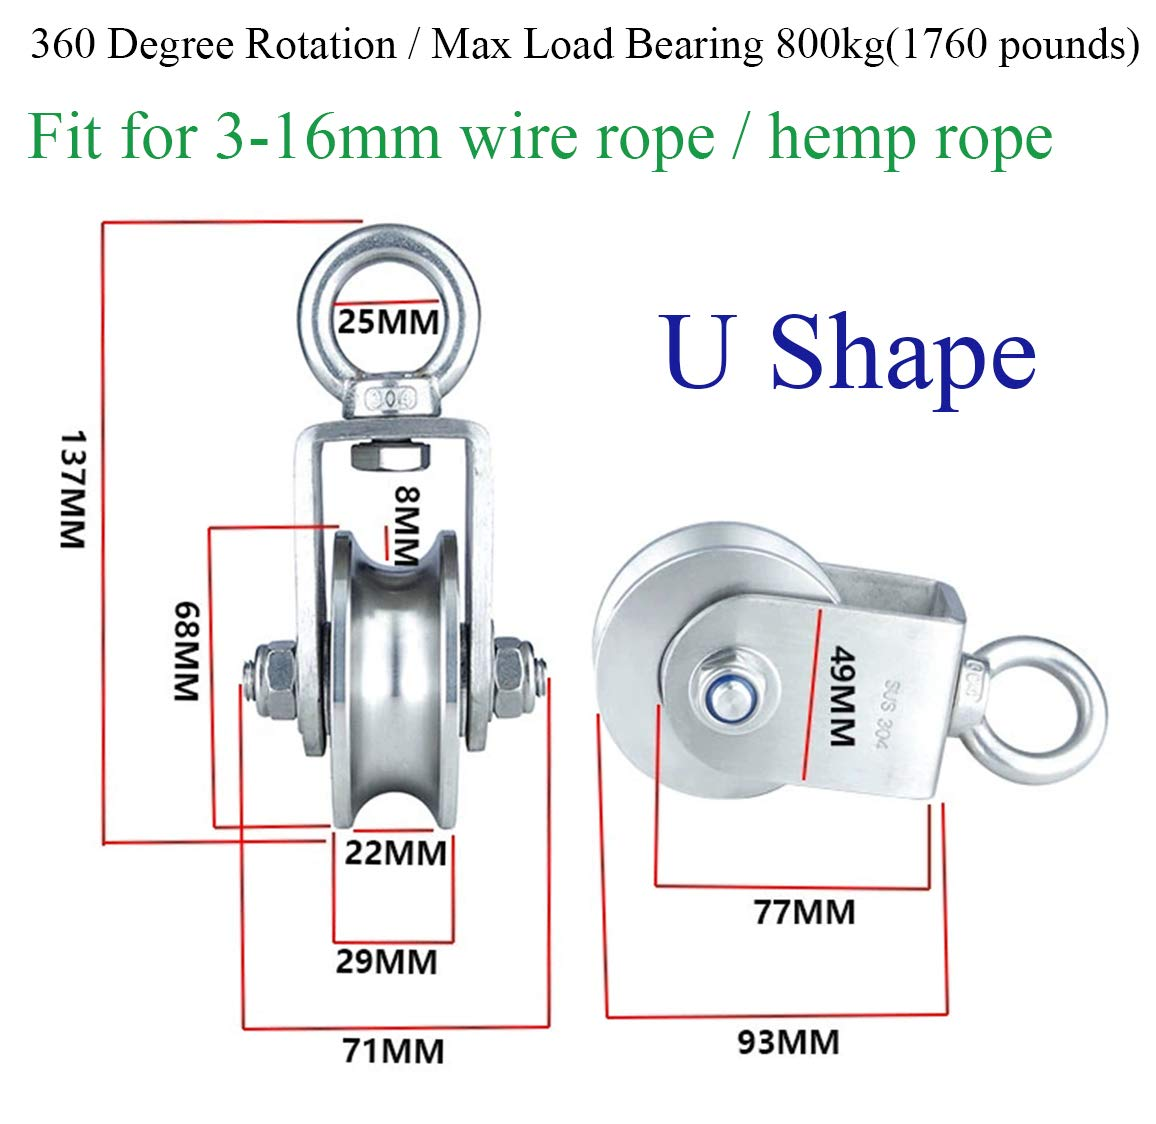 Penkwiio 1PCS Heavy Duty U Type Single Wheel Pulley Block Duplex Bearing 304 Stainless Steel 360 Degree Rotation Smooth Loading 1760lb/800 Kg for Material Handling and Moving: Industrial & Scientific